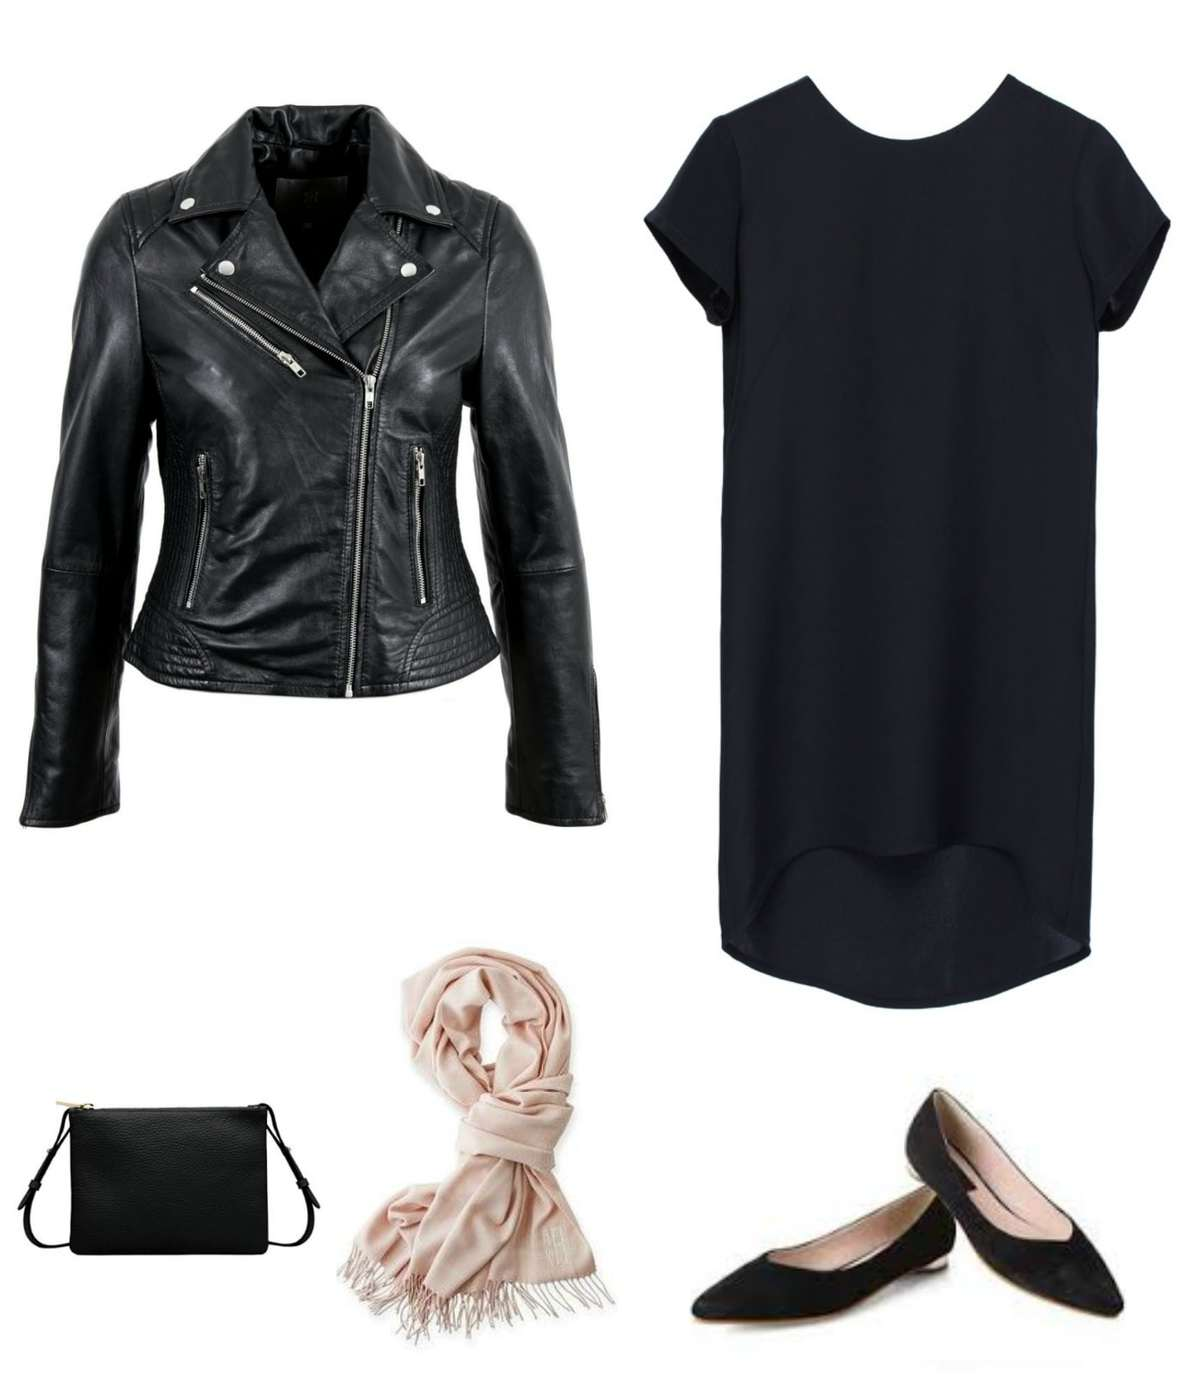 A black silk t-shirt dress with black pointed flats, cream pashmina, black clutch purse, and black leather Moto jacket.